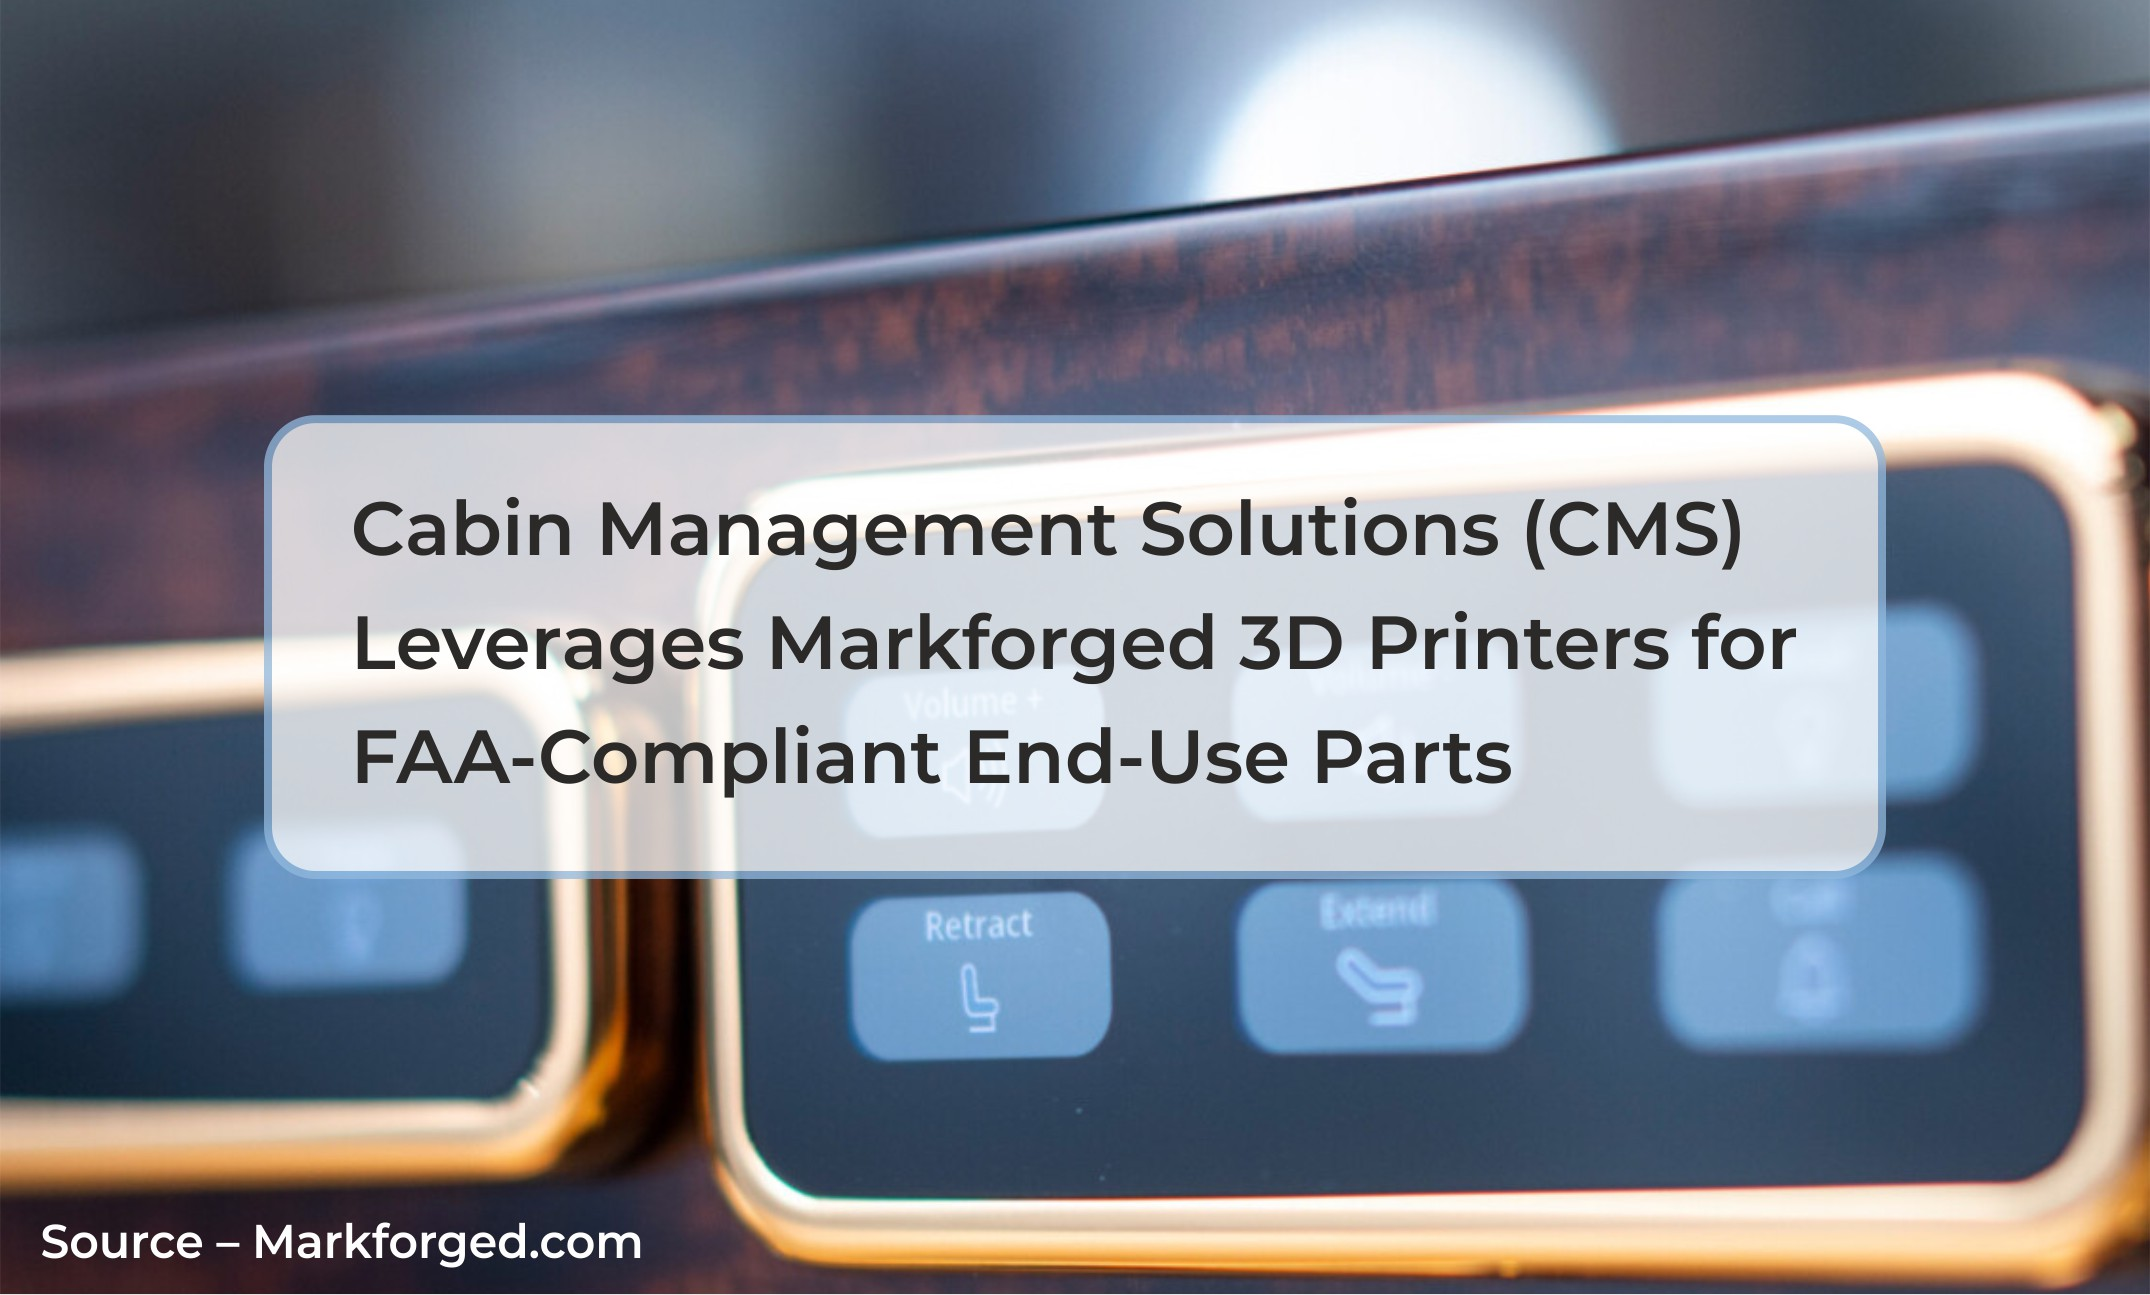 Cabin Management Solutions CMS leverages Markforged 3D Printers for FAACompliant EndUse Parts